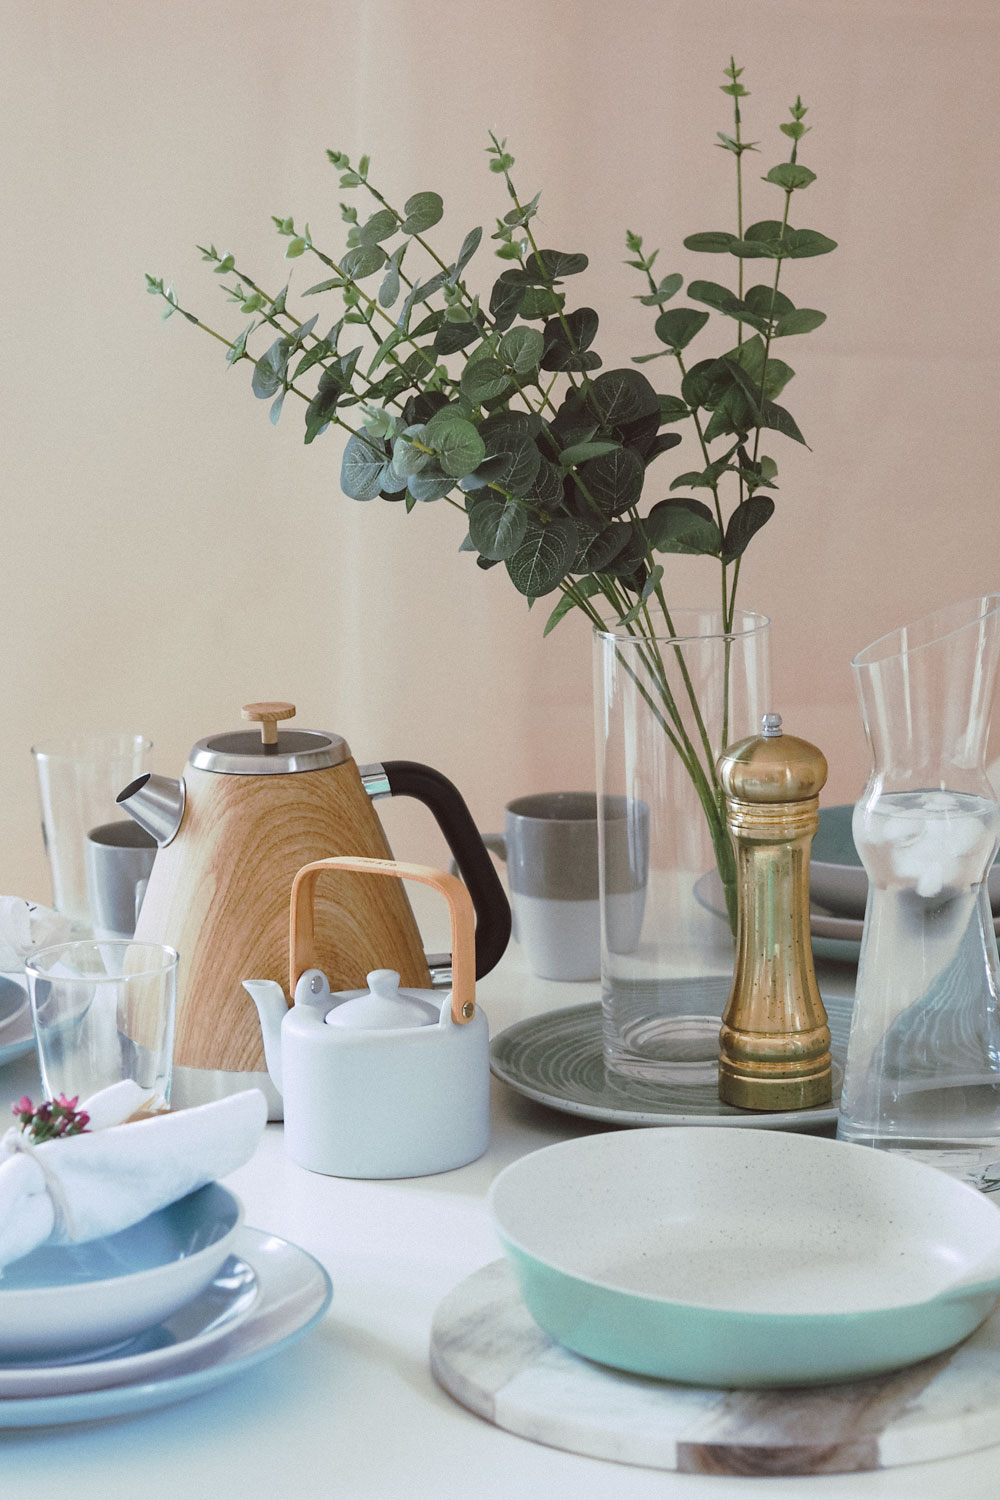 Today I'm sharing a Scandinavian inspired table setting for autumn, with a little help from Studio.co.uk. Discover more by clicking here.